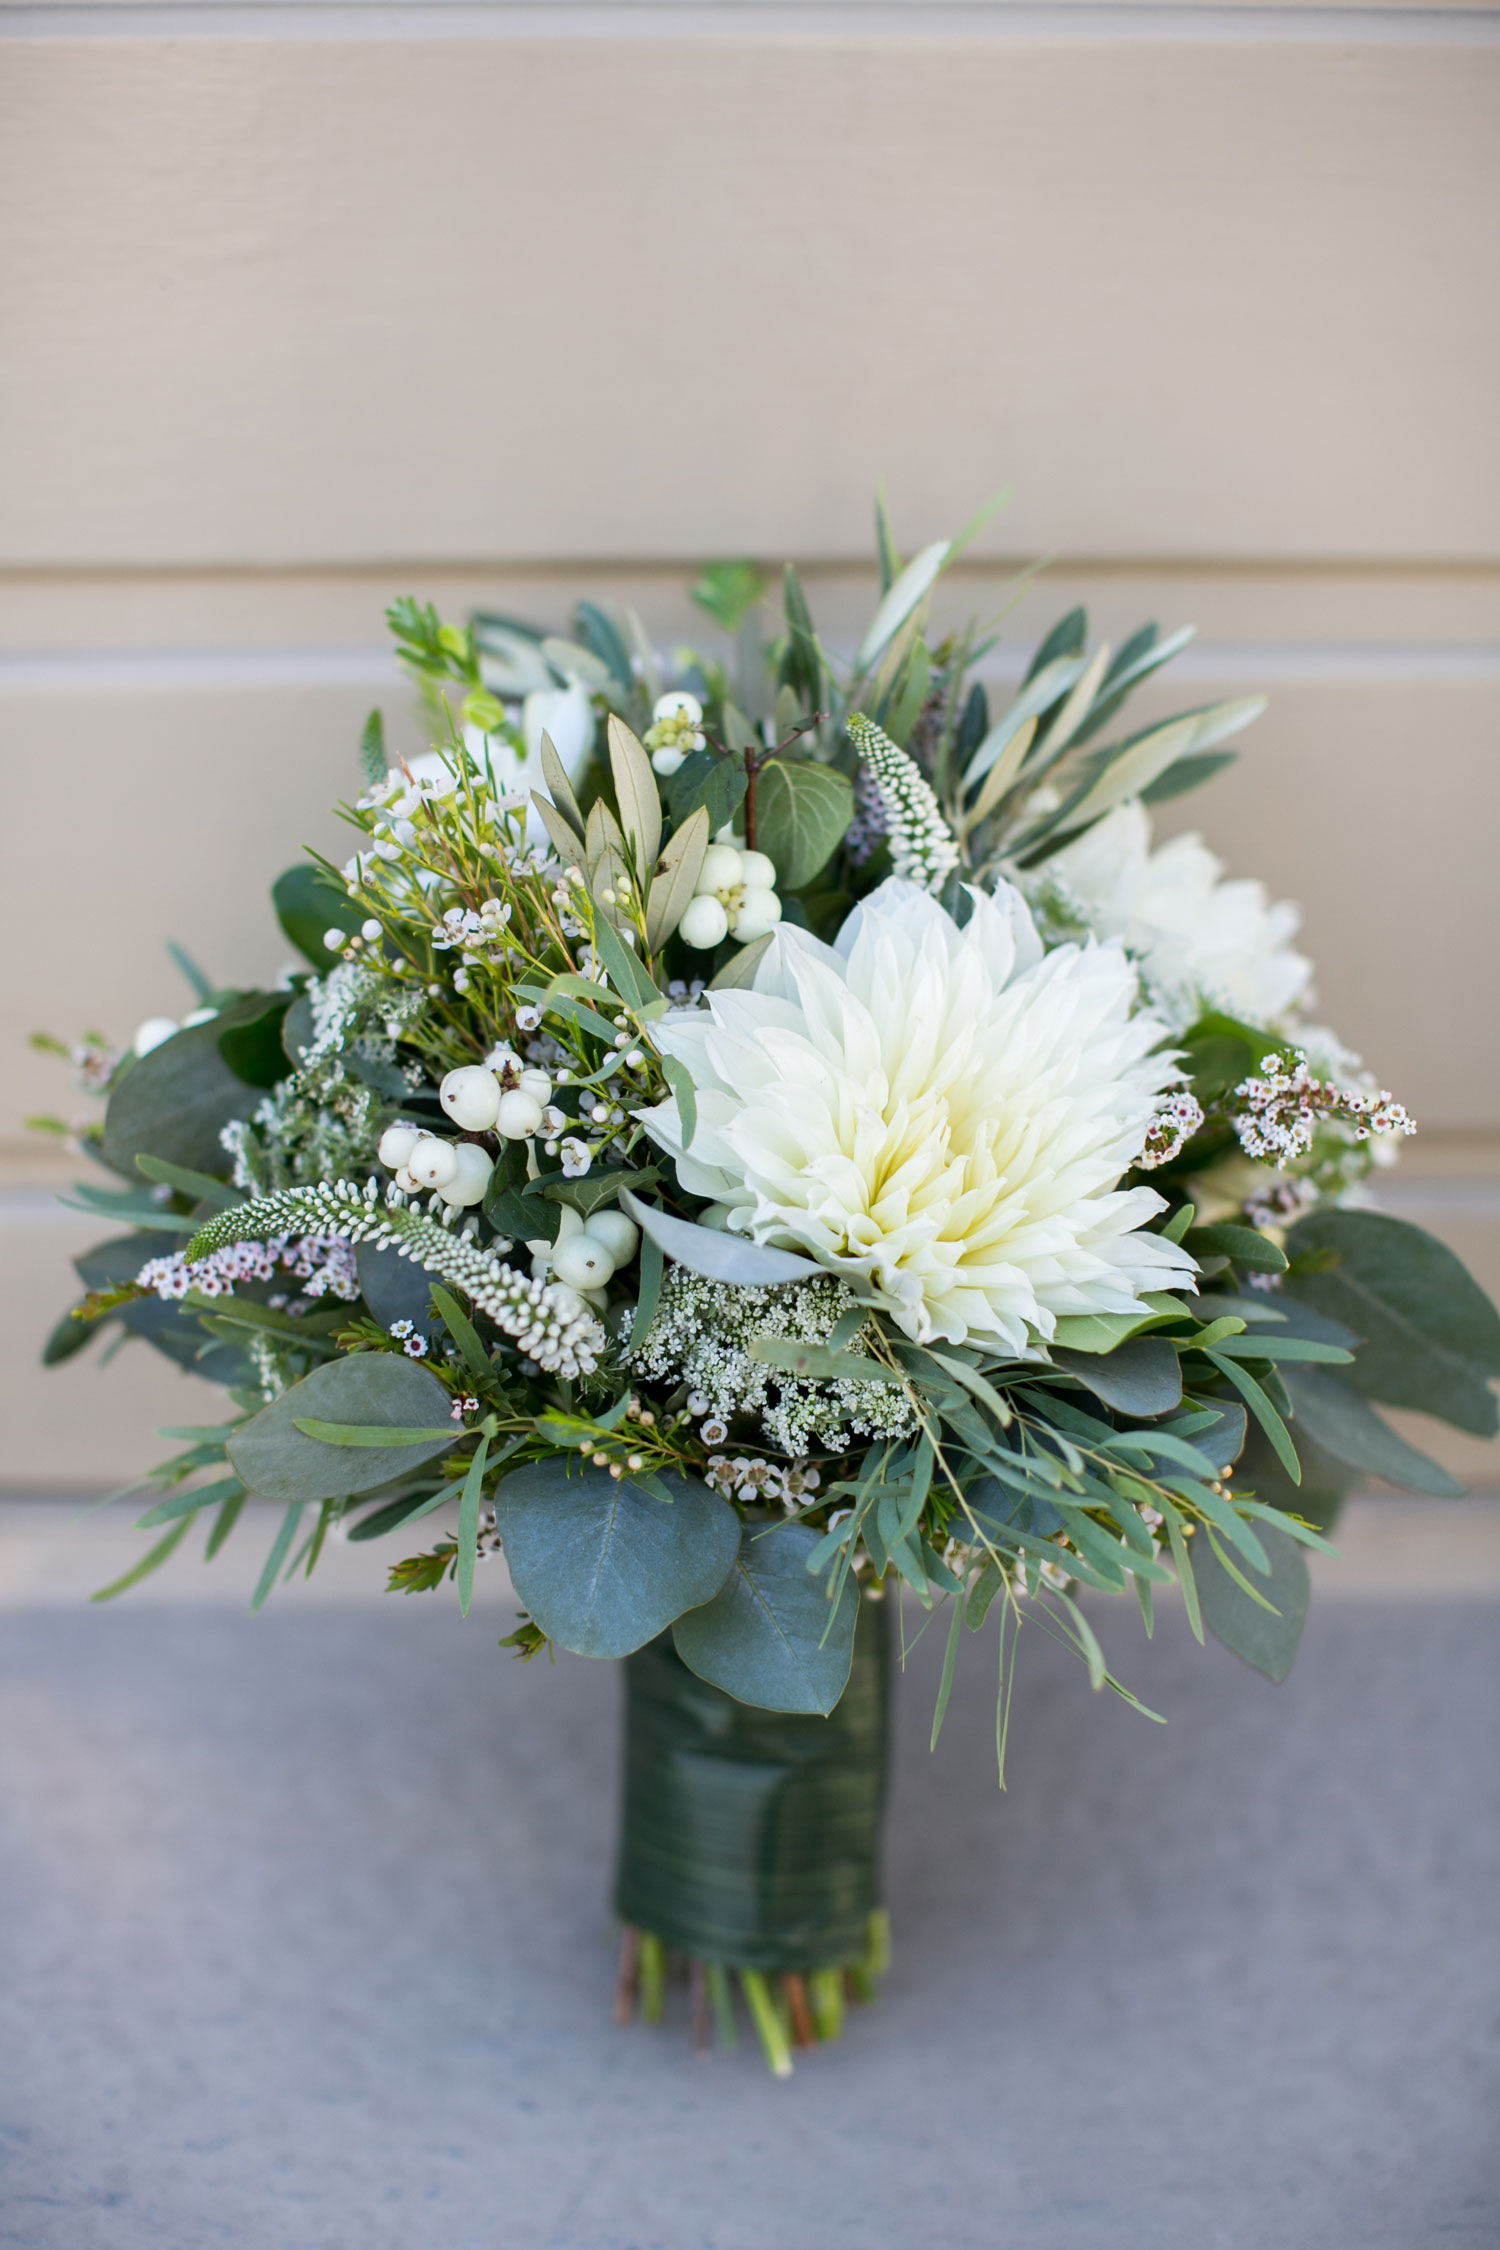 Small wedding bouquet greenery nosegay bouquet style